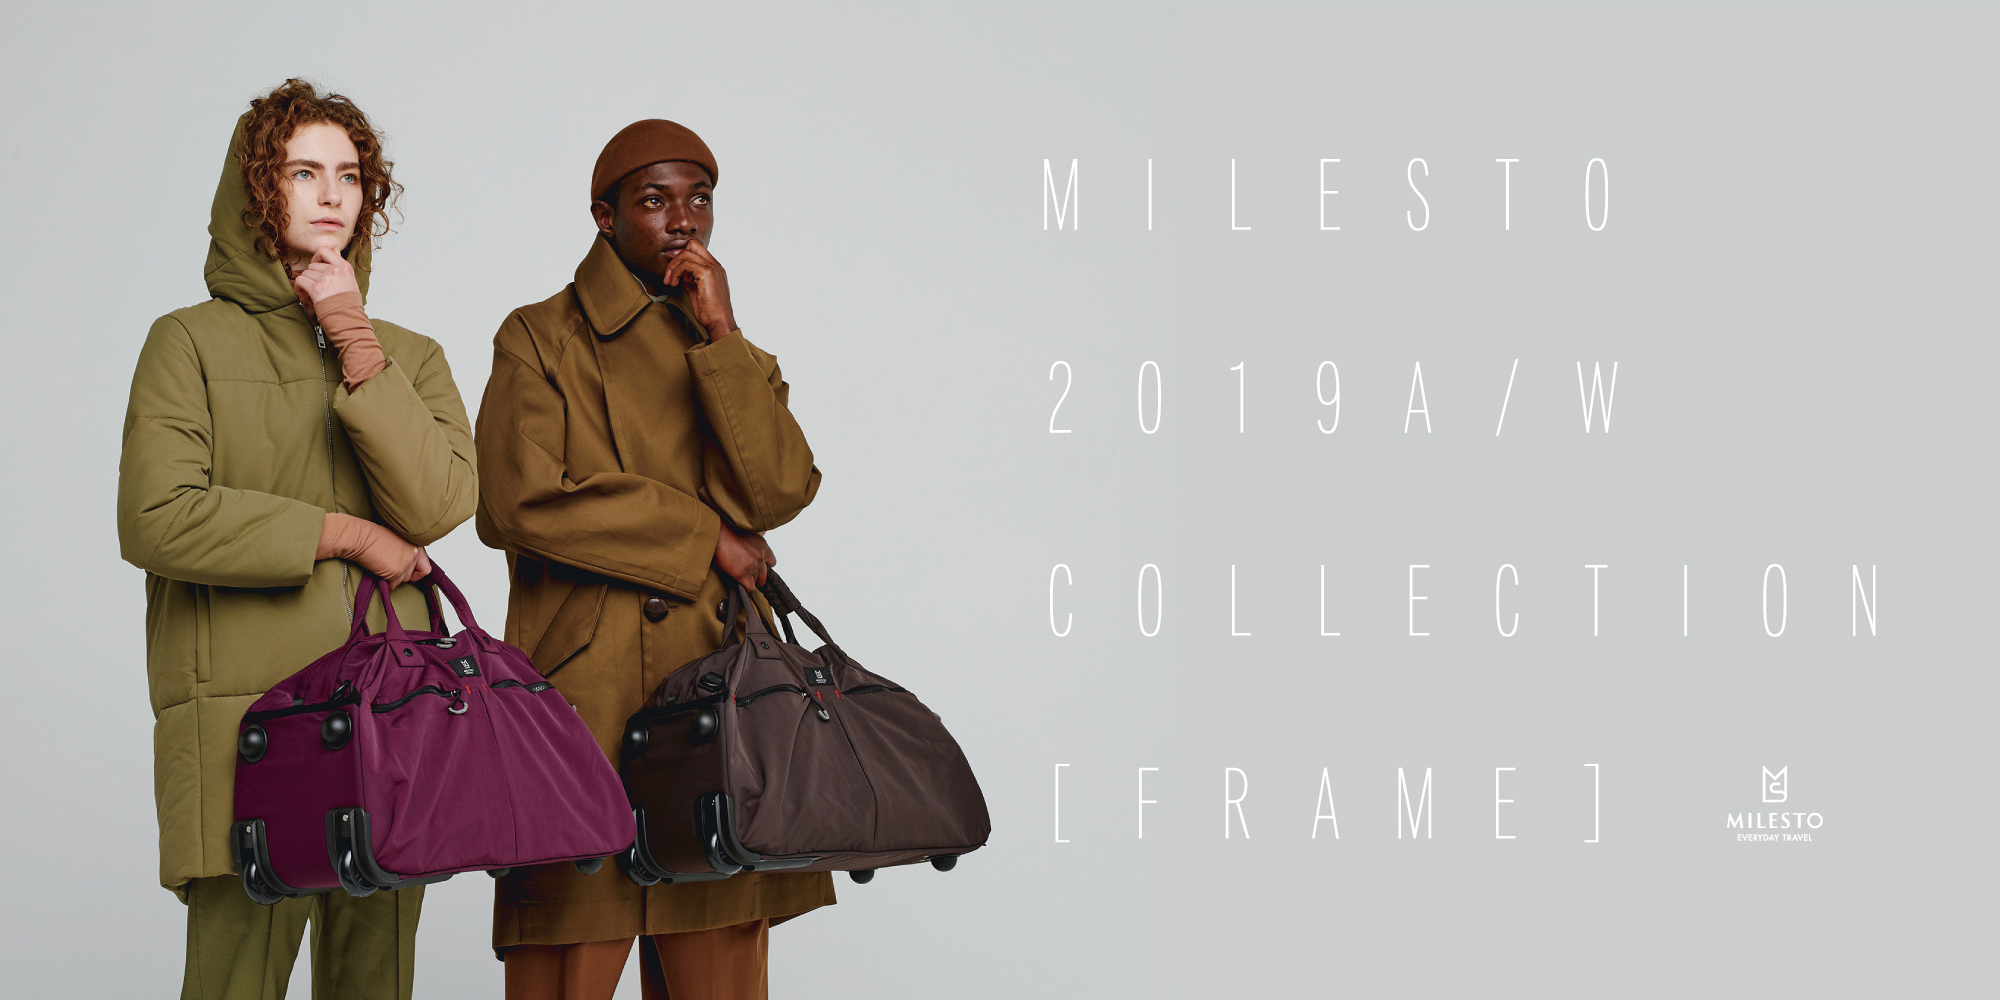 MILESTO 2019A/W COLLECTION [FRAME]